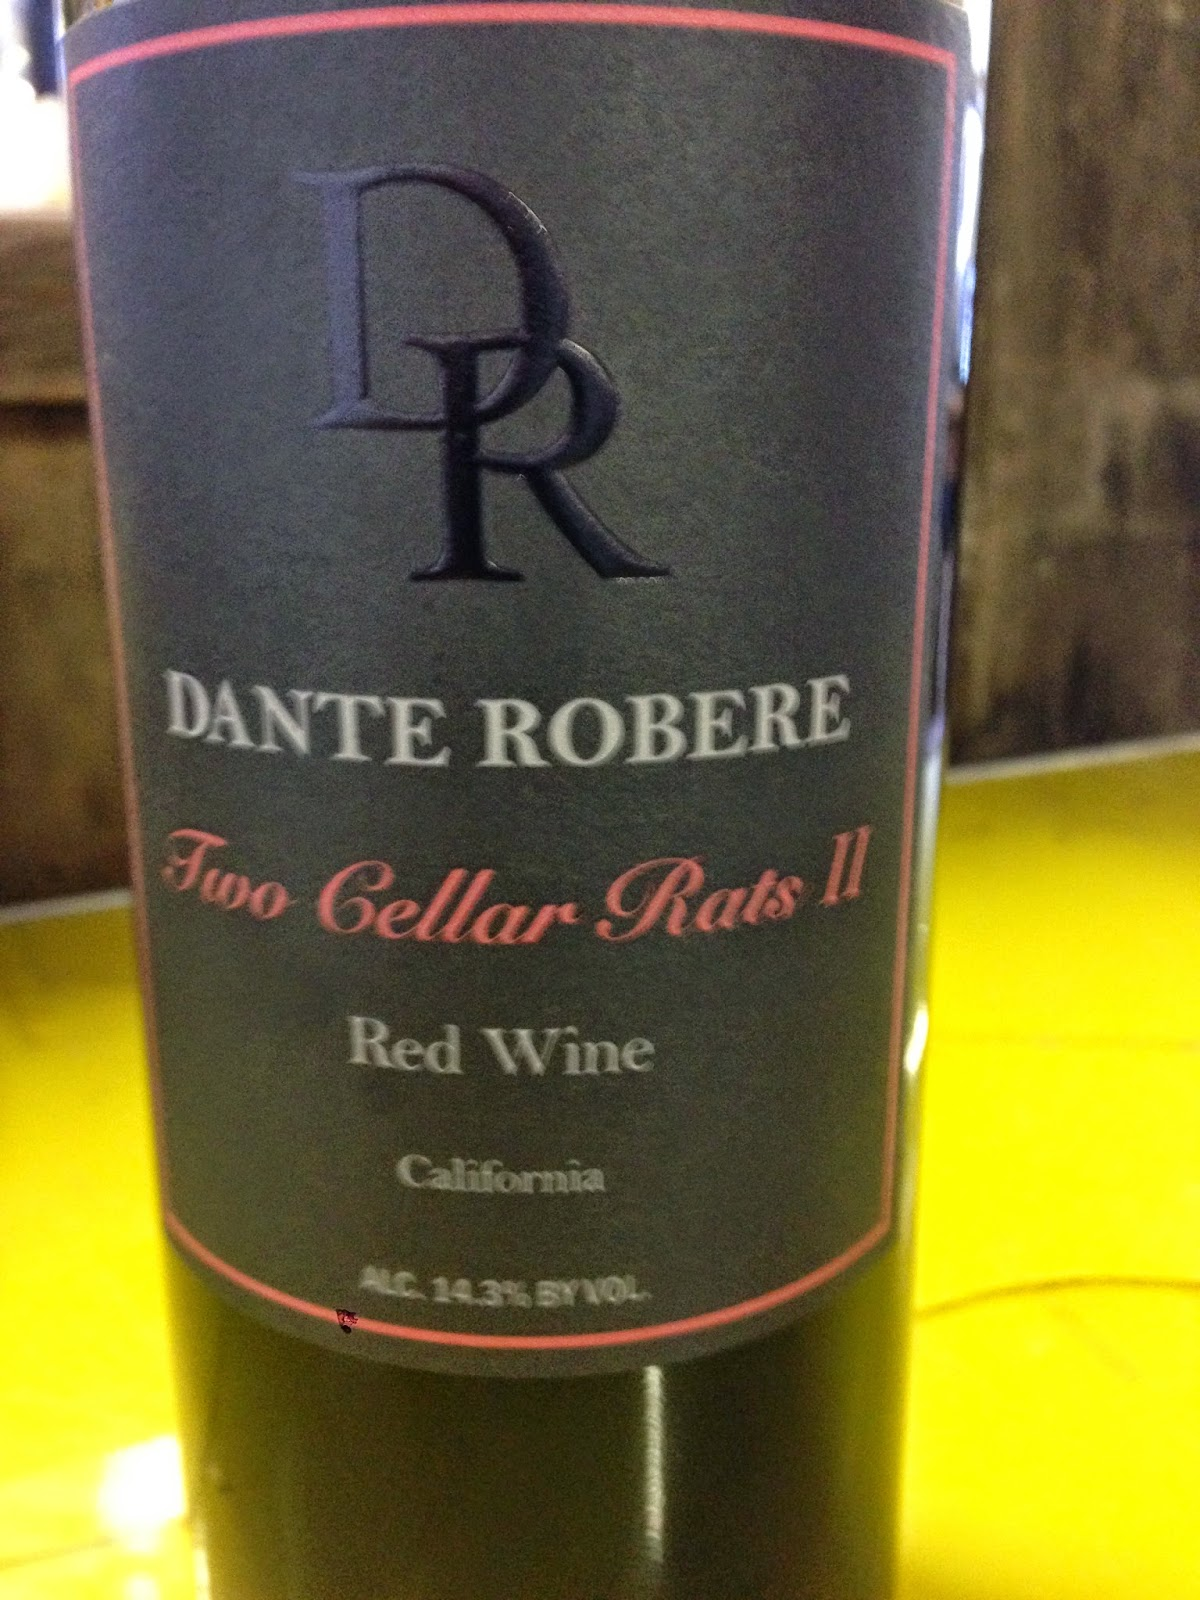 Dante Robere Vineyards: An Update